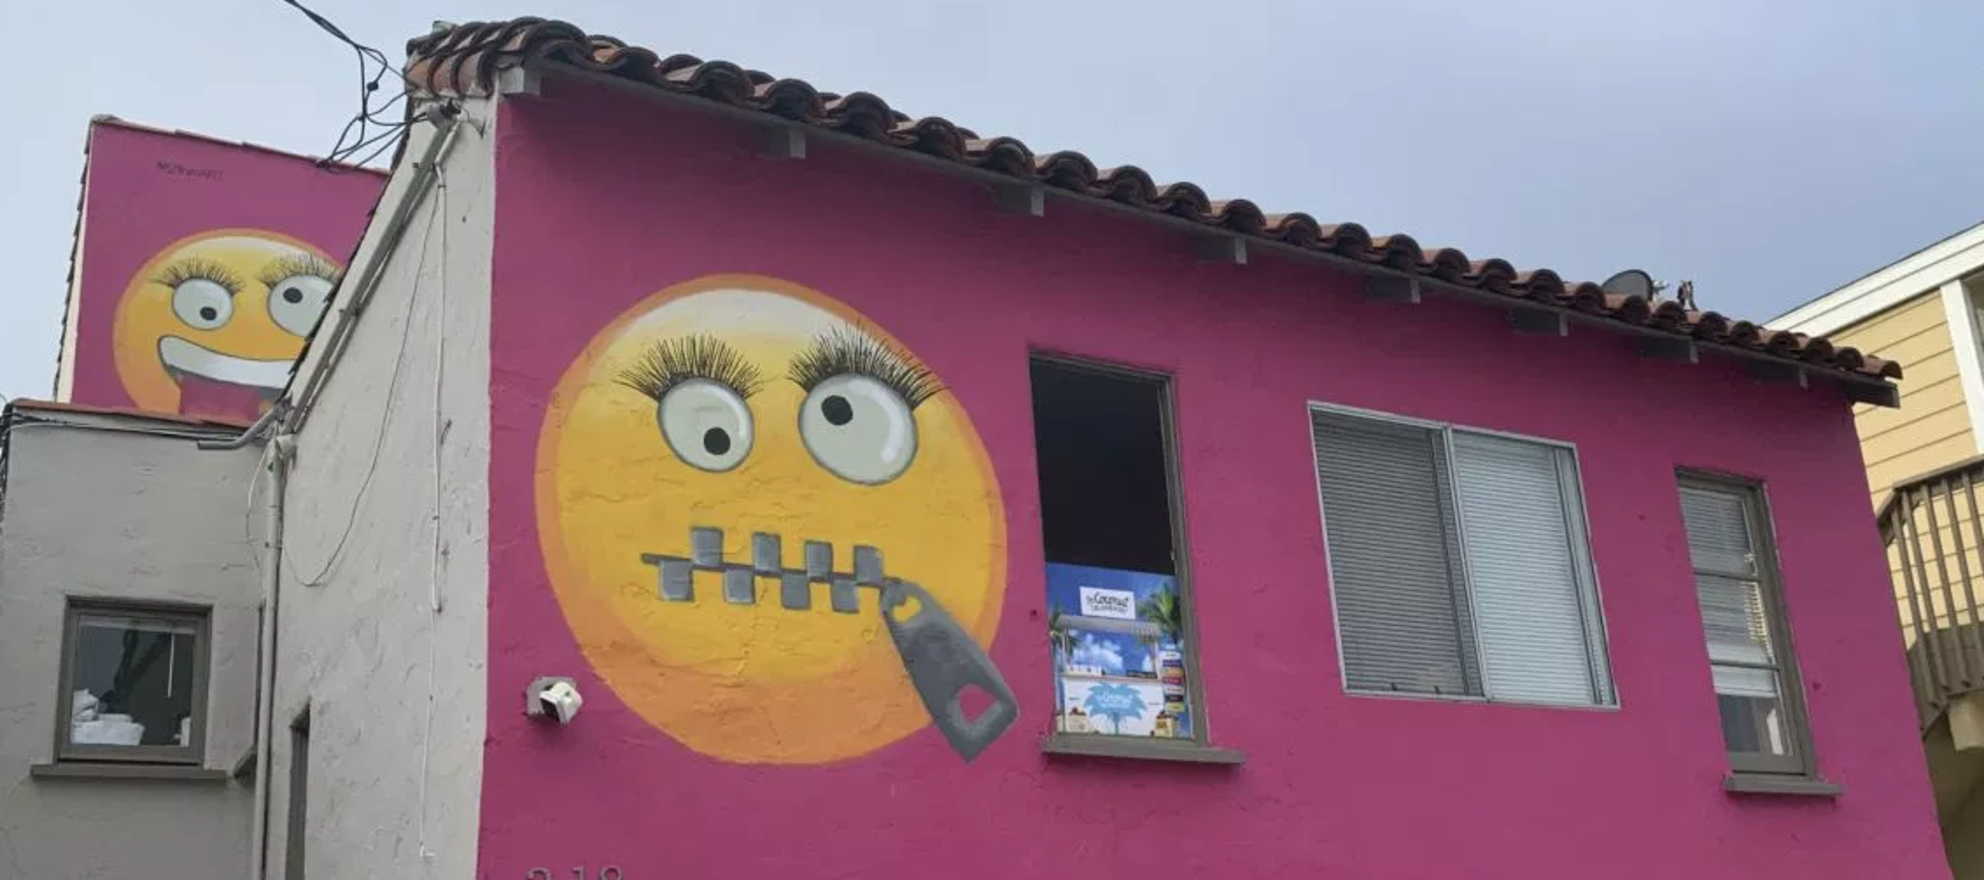 Pink emoji house that caused neighborhood furor up for sale